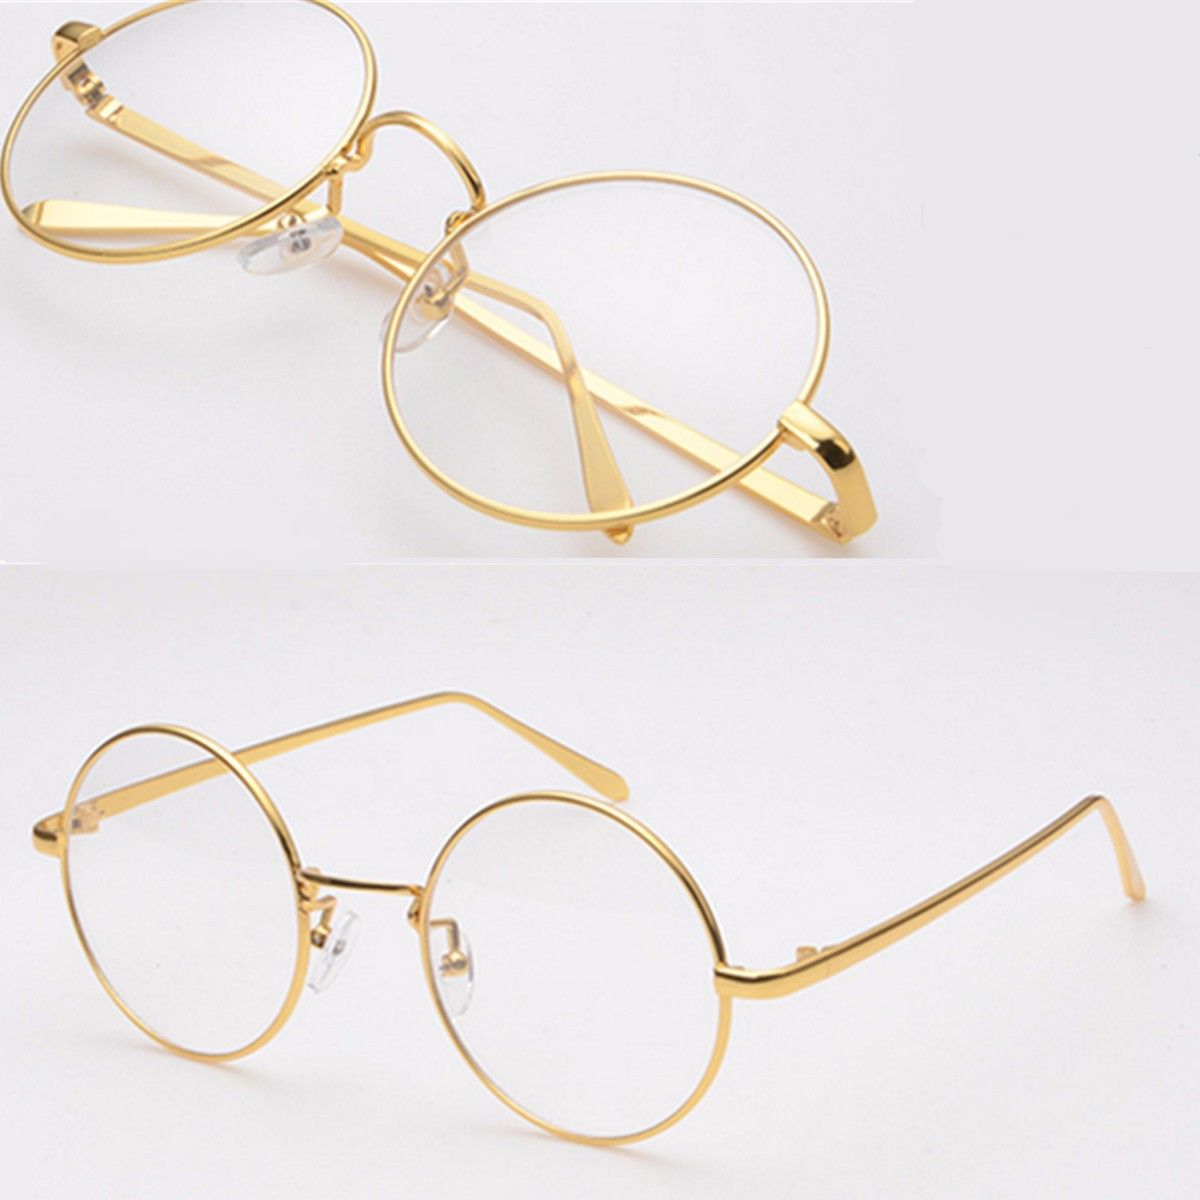 8e5eee18cf32 GOLD Metal Vintage Round Eyeglass Frame Clear Lens Full-Rim Glasses ...